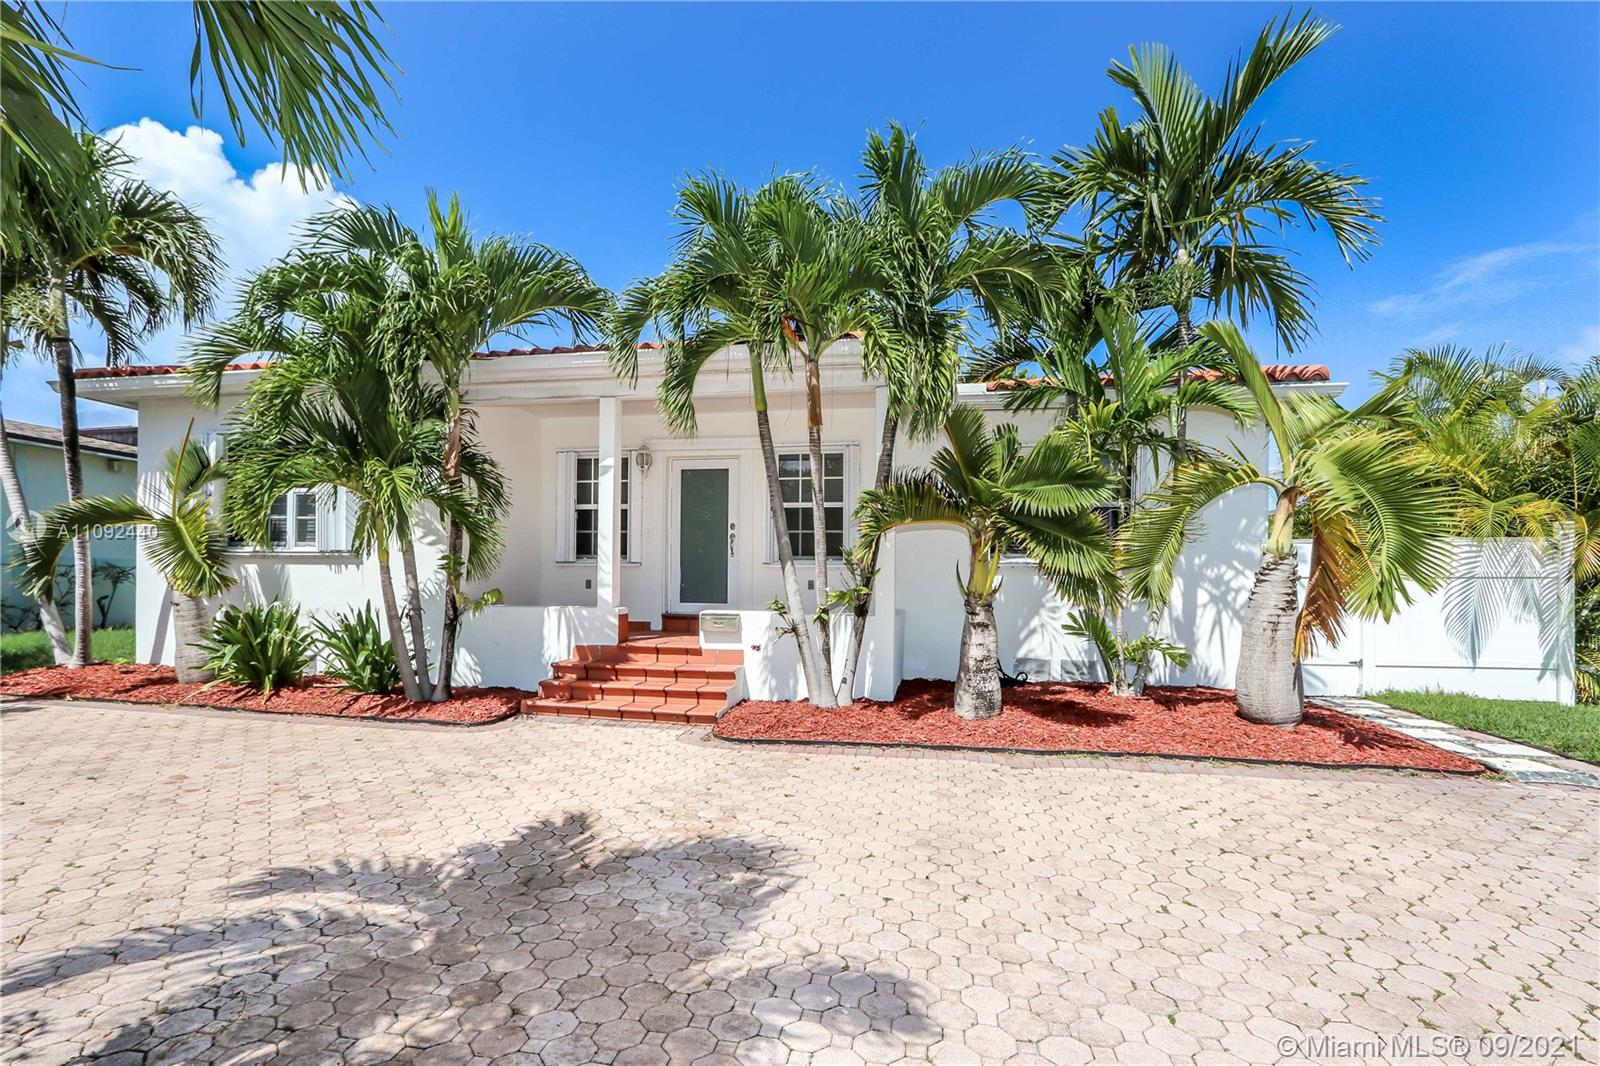 This Miami Beach house is only 1 mile from the beach and surrounded by multi million dollar waterfront homes. Spacious, 2530 square feet, 4 bedroom 3 full baths with large family room and good size backyard to build your dream pool. Property features impact front door plus accordion hurricane shutters throughout, updated kitchen and baths, marble floors, natural gas and more.... Located in prestigious Biscayne Point guarded island, minutes to South Beach, Aventura, Miami International Airport, Brickell and plenty of entertainments/dinning areas of Miami in general. Call us, easy to see!